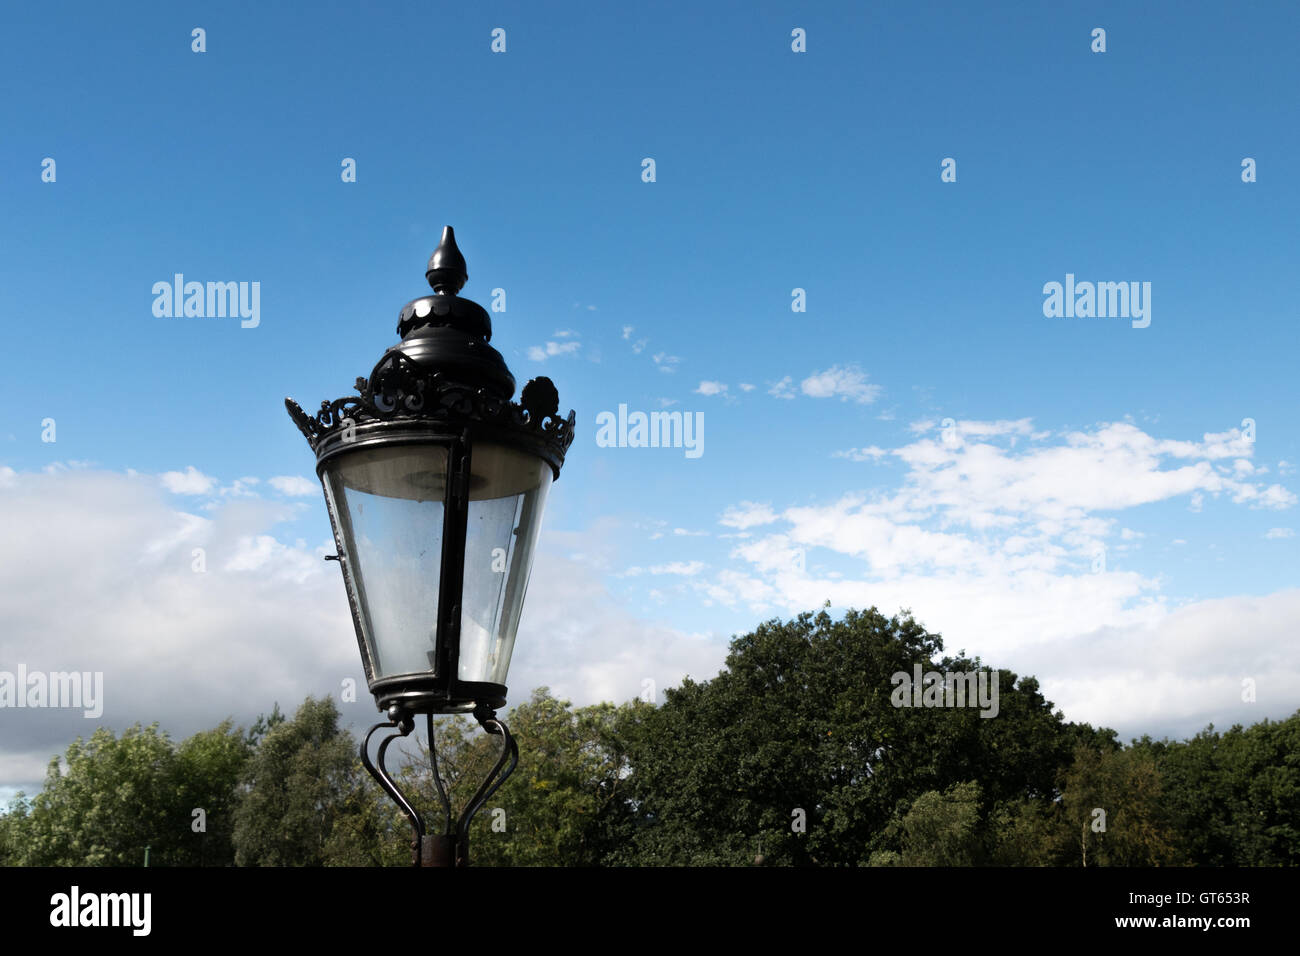 Ornate iron lamp and blue sky at Beamish museum - Stock Image